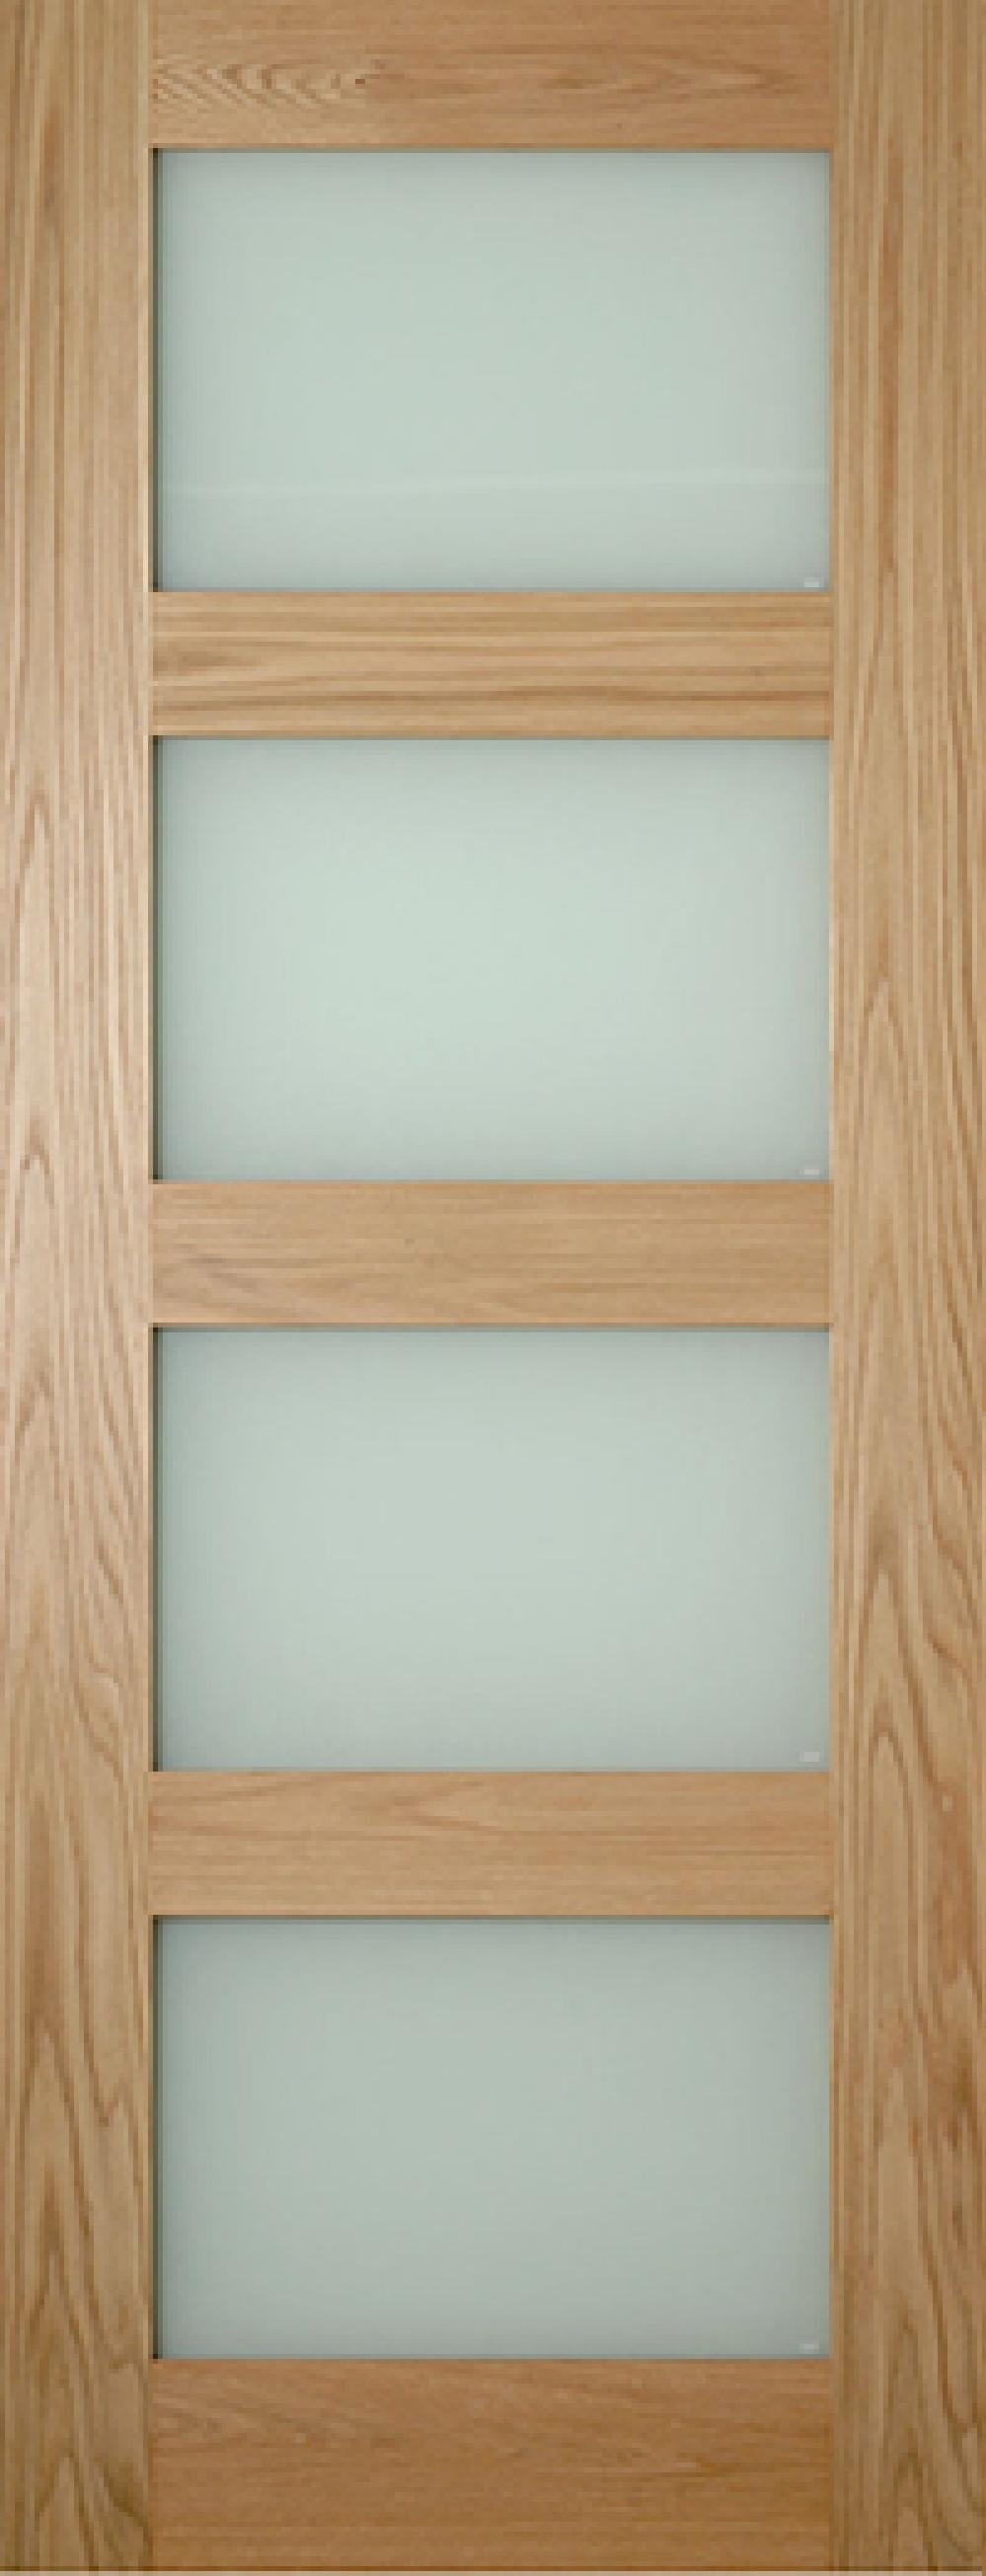 Coventry Glazed Oak Shaker - Frosted Glass:  Image